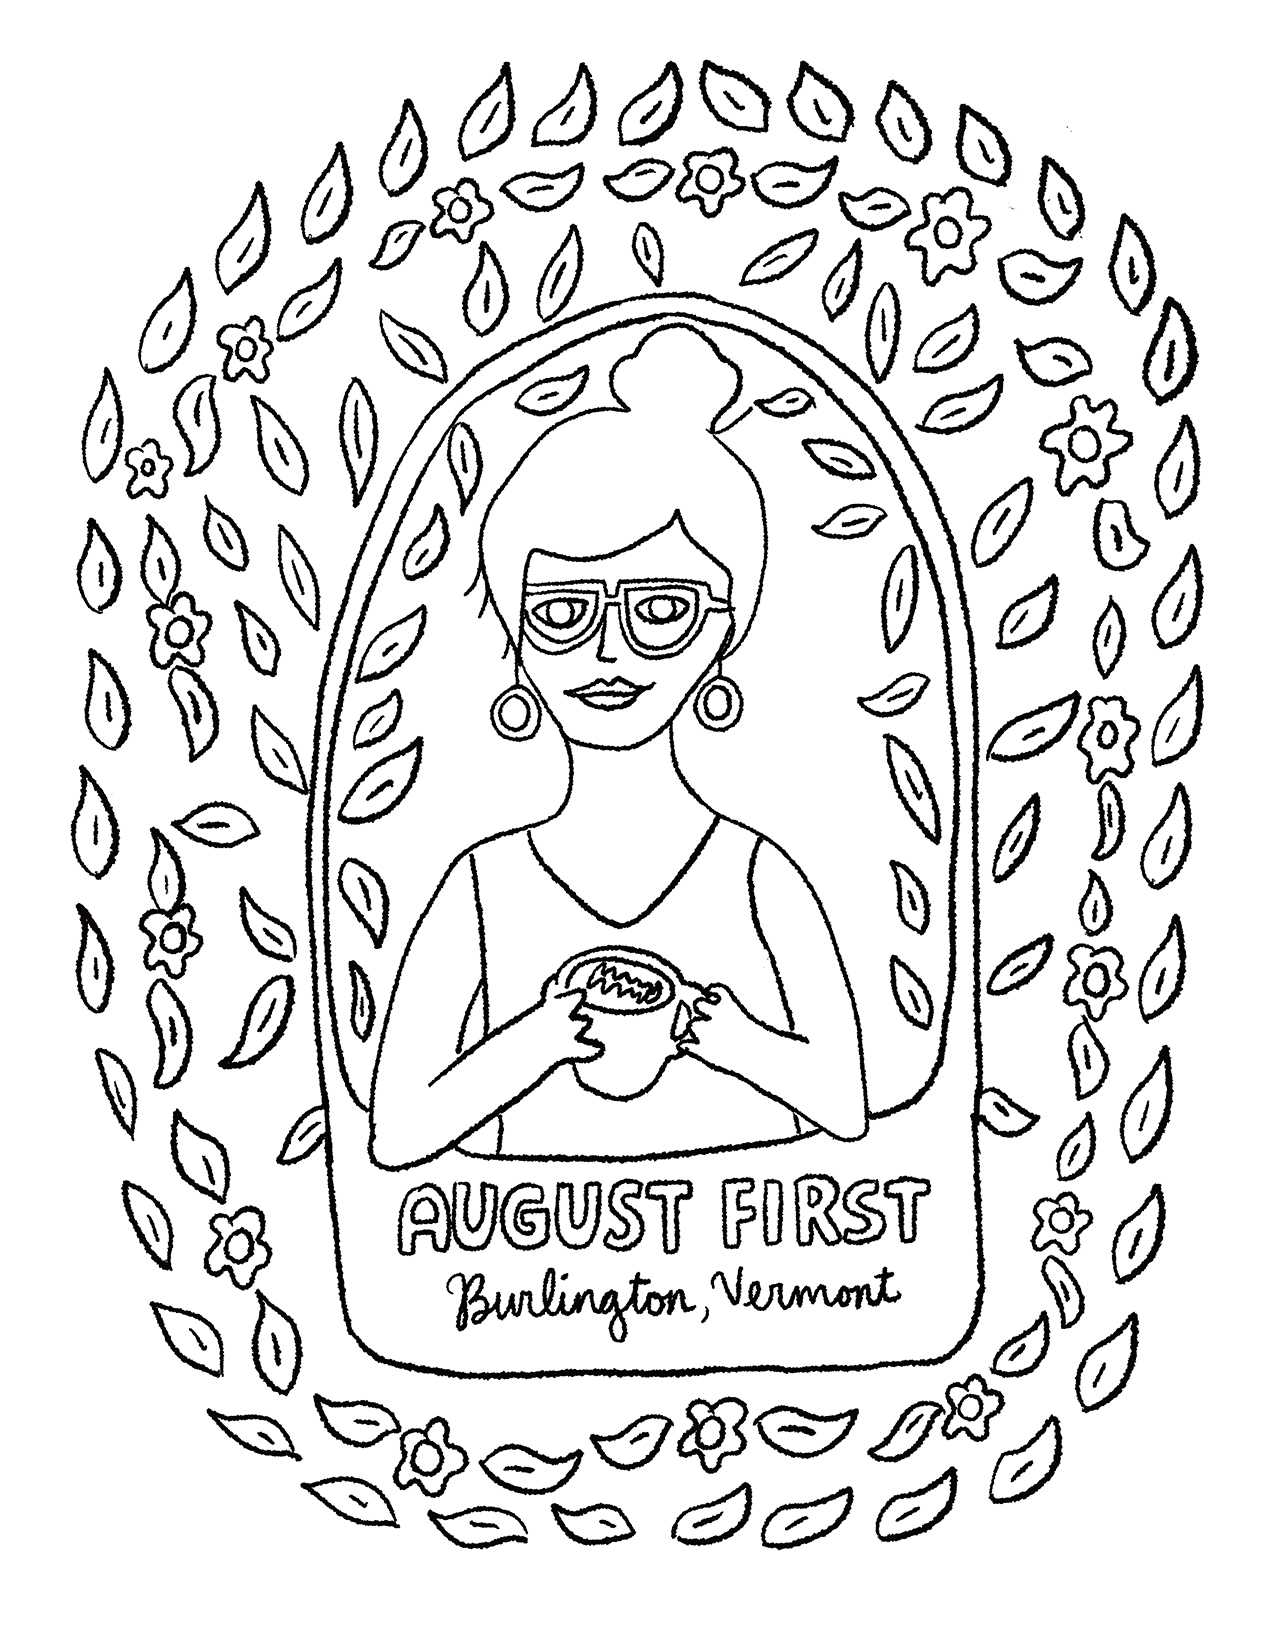 AUGUST FIRST COLORING BOOK: WOMAN